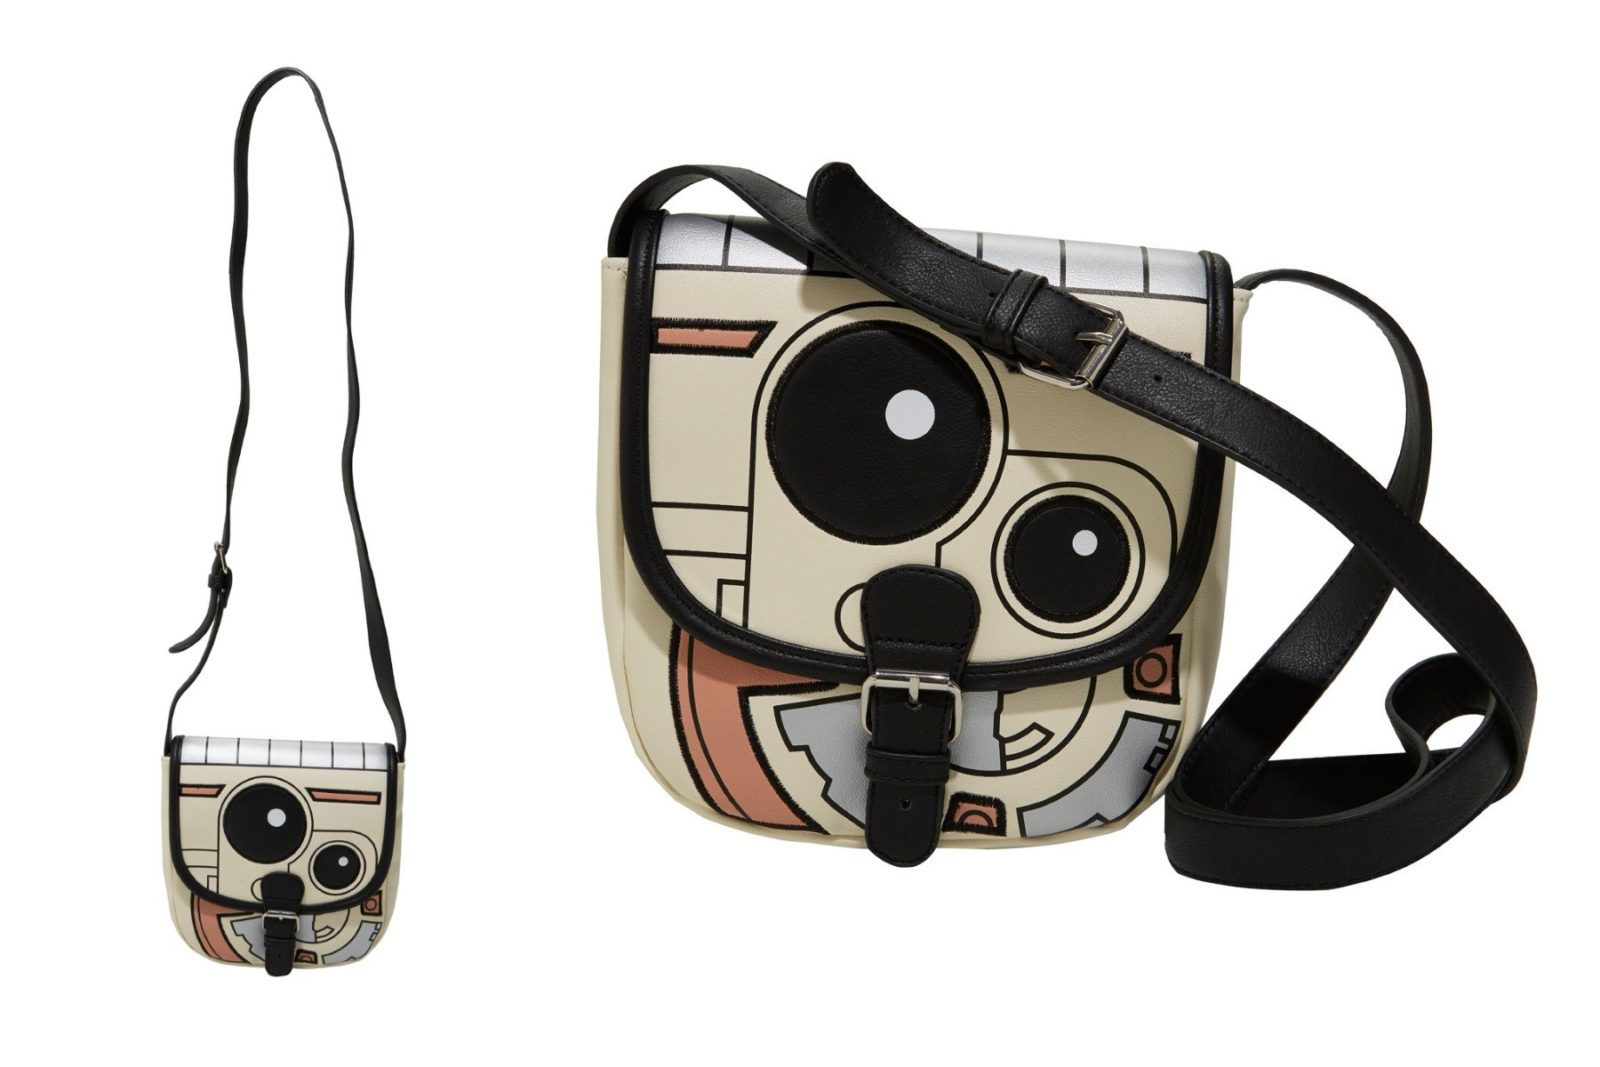 BB-8 pastel saddle bag at Hot Topic